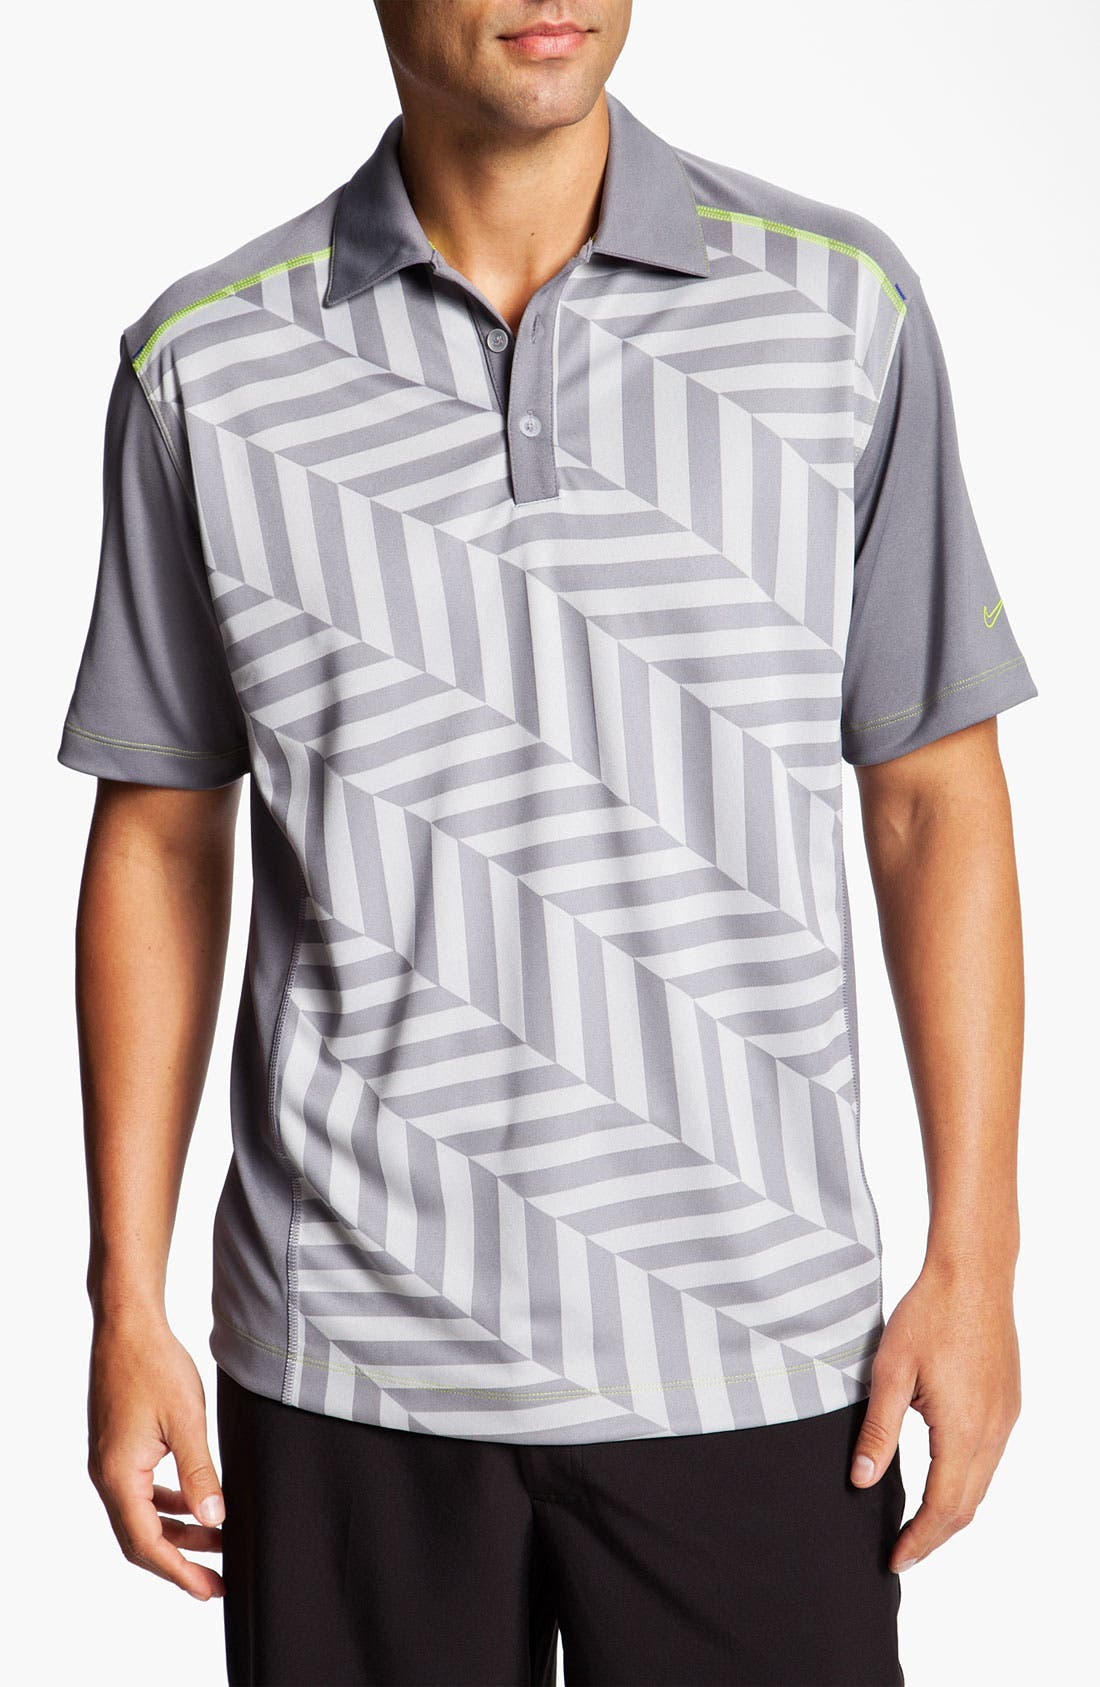 Alternate Image 1 Selected - Nike Golf 'Herringbone Jacquard' Dri-FIT Polo